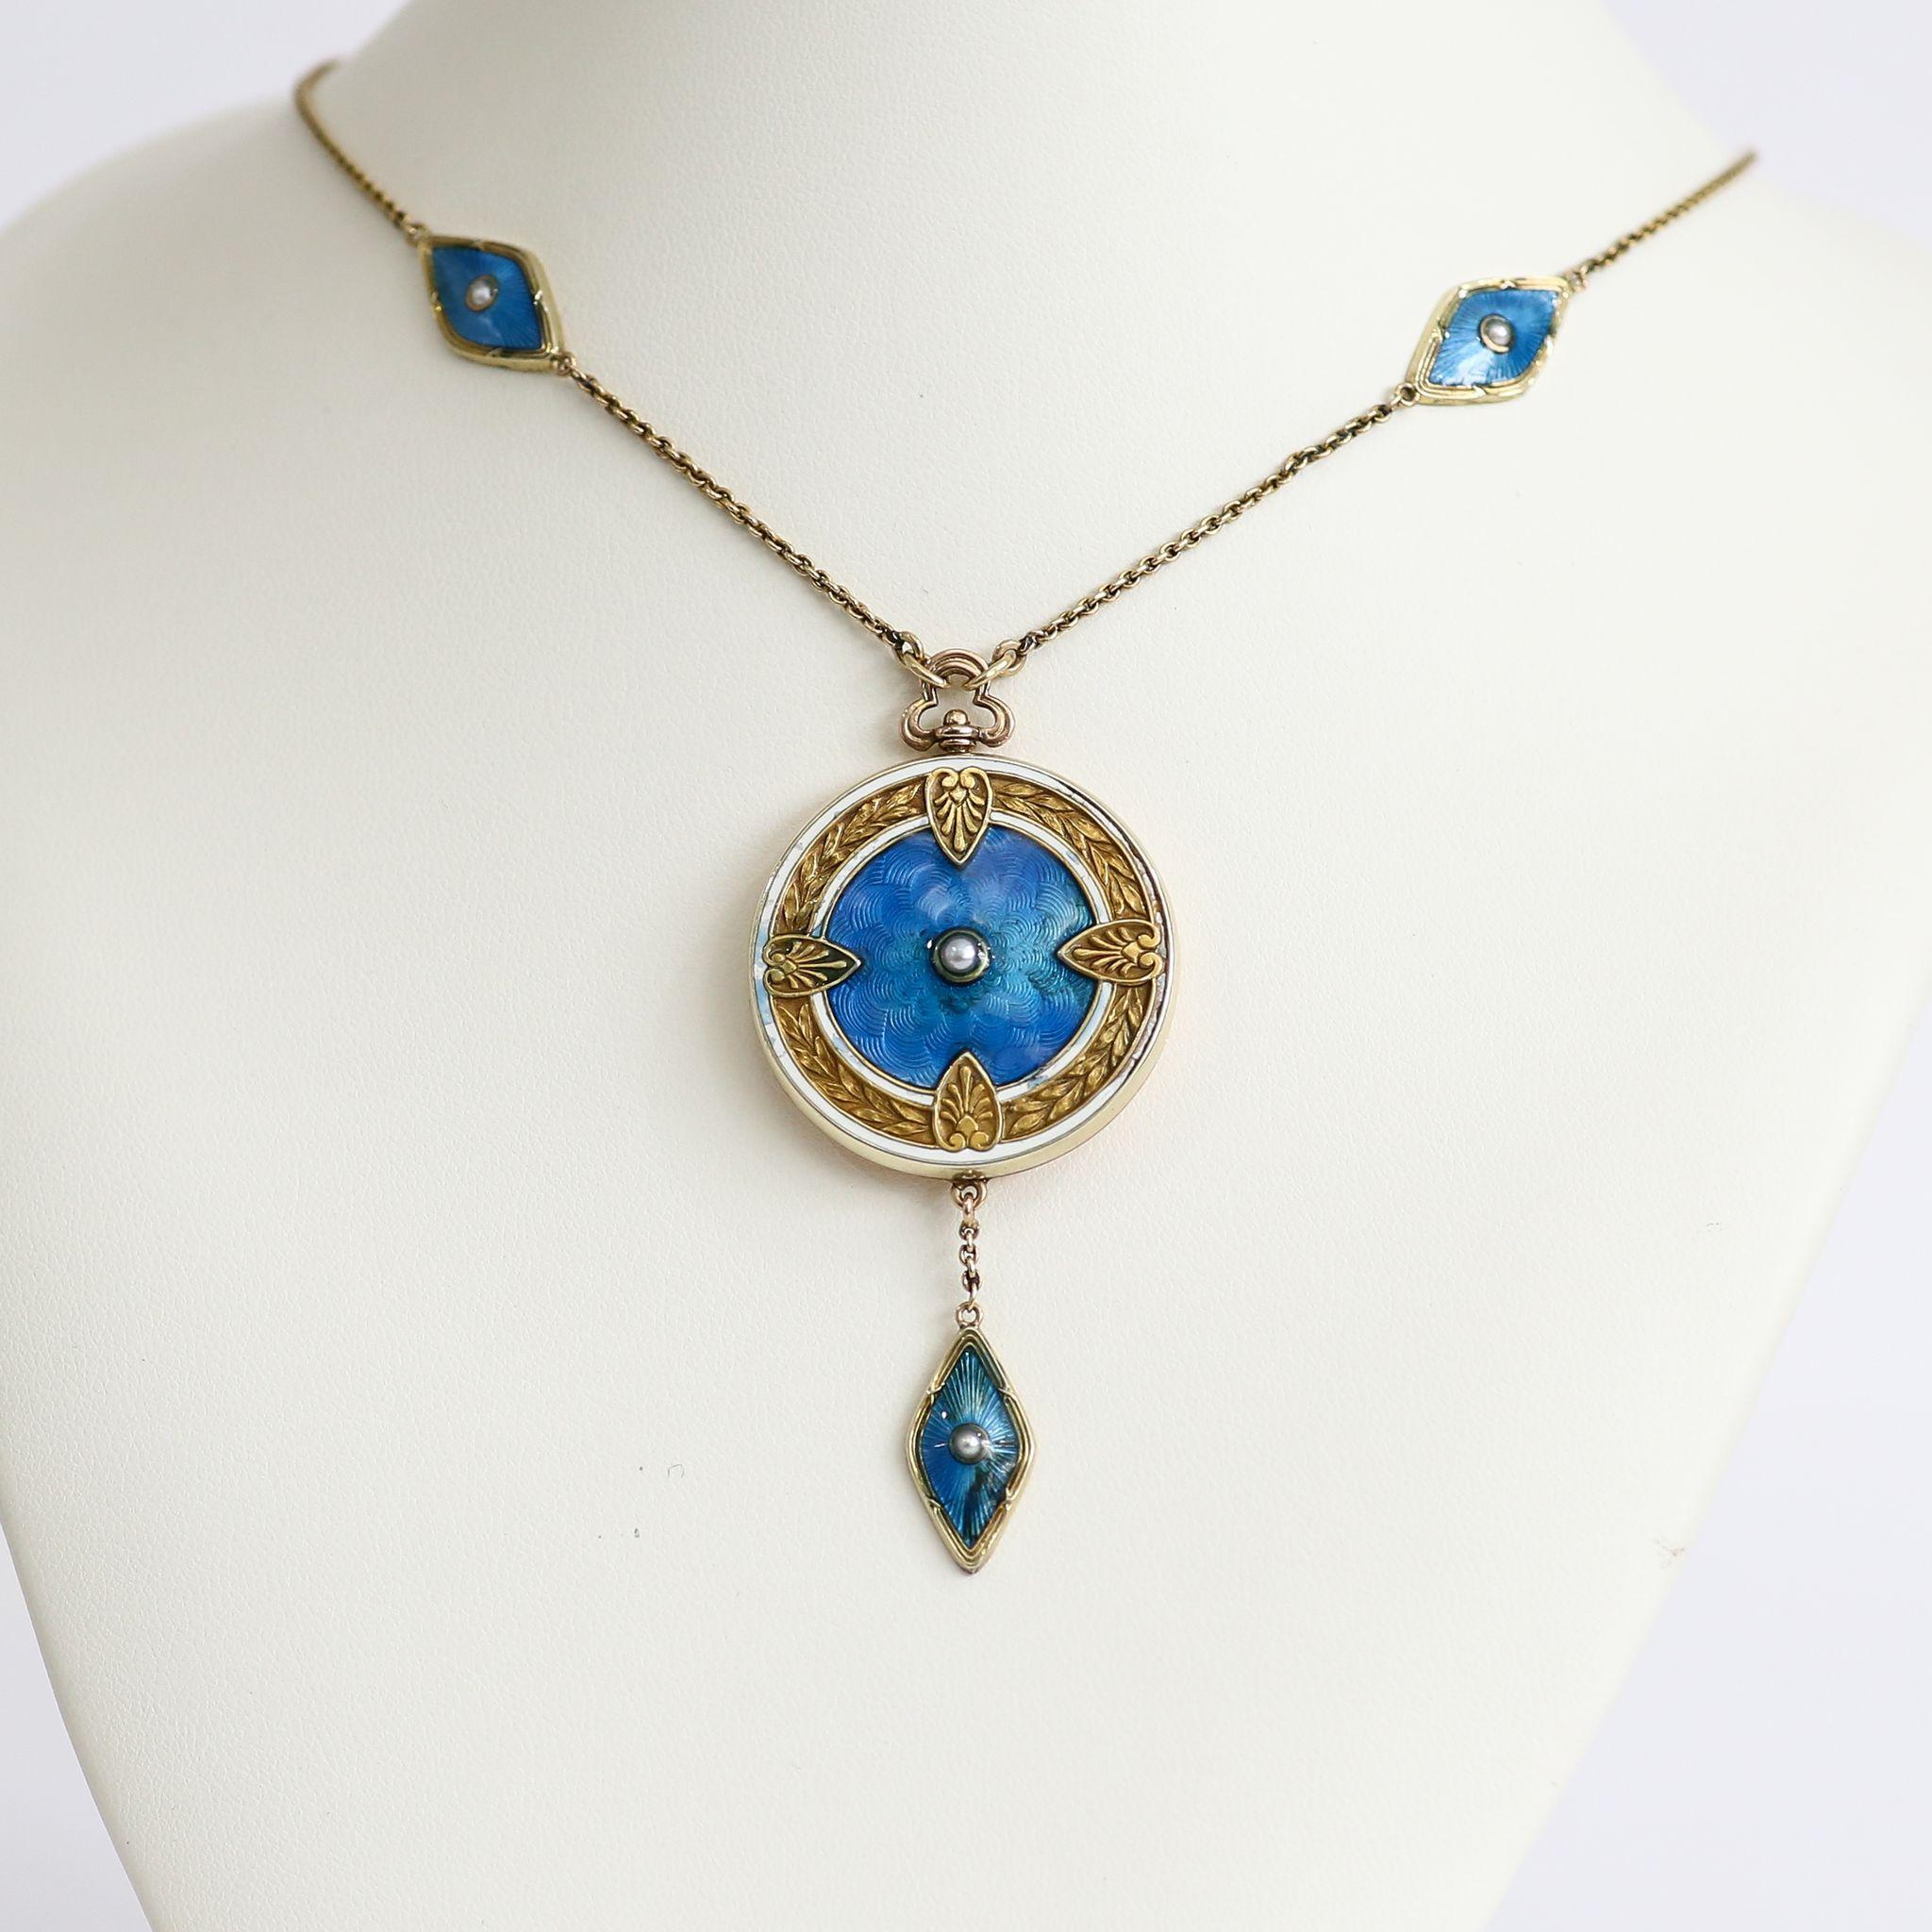 Magnificent Circa 1900 Art Nouveau 14K Enameled Double Locket Necklace